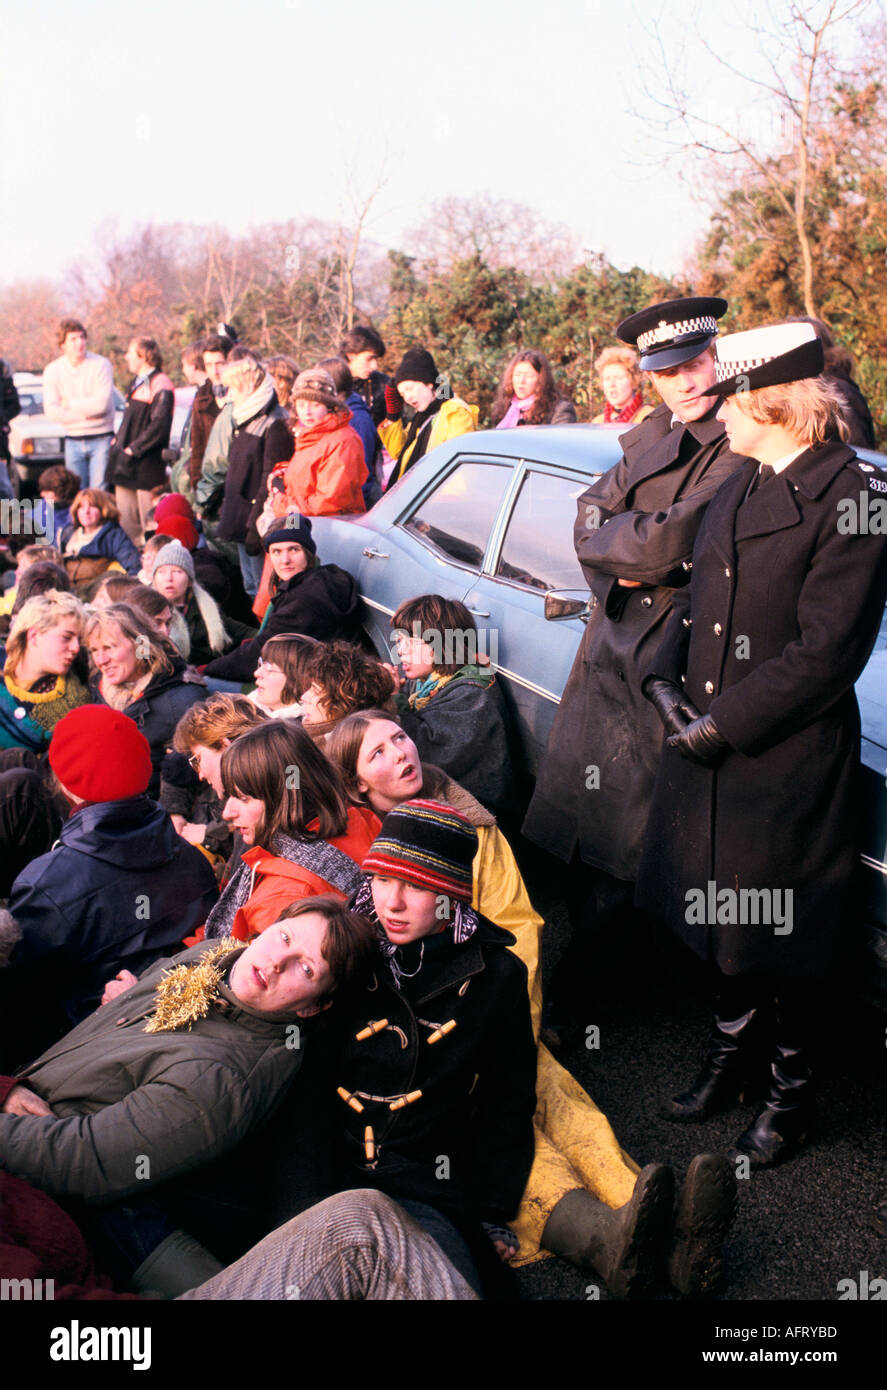 Frauen FRIEDENSCAMP BLOCKADE DER AMERIKANISCHEN USAF NUKLEARE MARSCHFLUGKÖRPER AIR BASE in Greenham Common BERKSHIRE Stockfoto